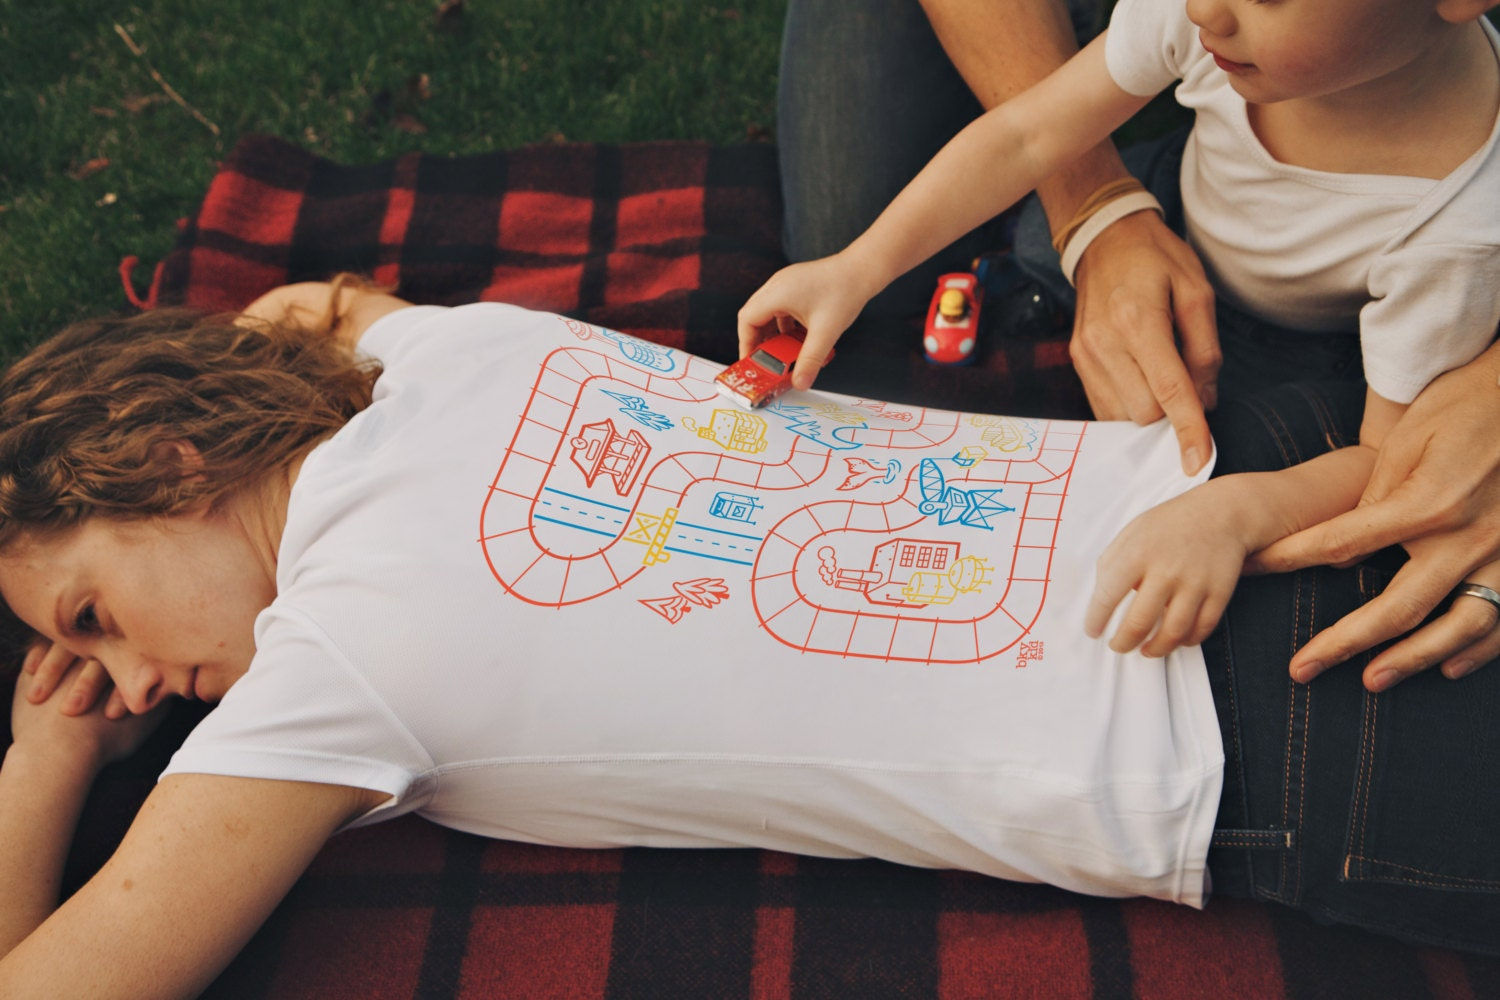 Xl play mat shirt for mom mom of boys shirt back rub shirt zoom negle